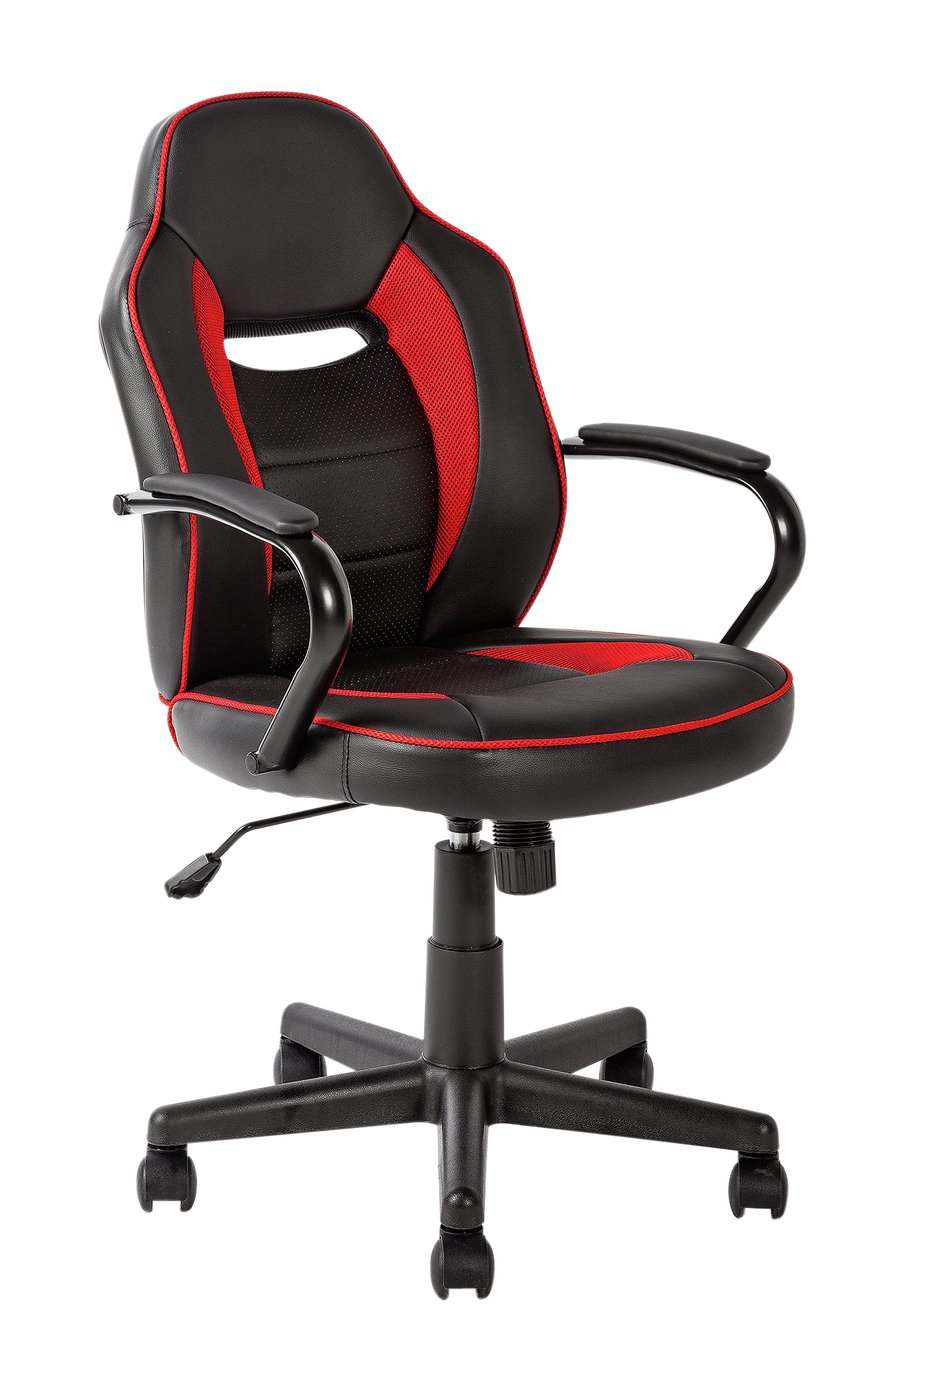 Argos Home Faux Leather Mid Back Gaming Chair - Red & Black